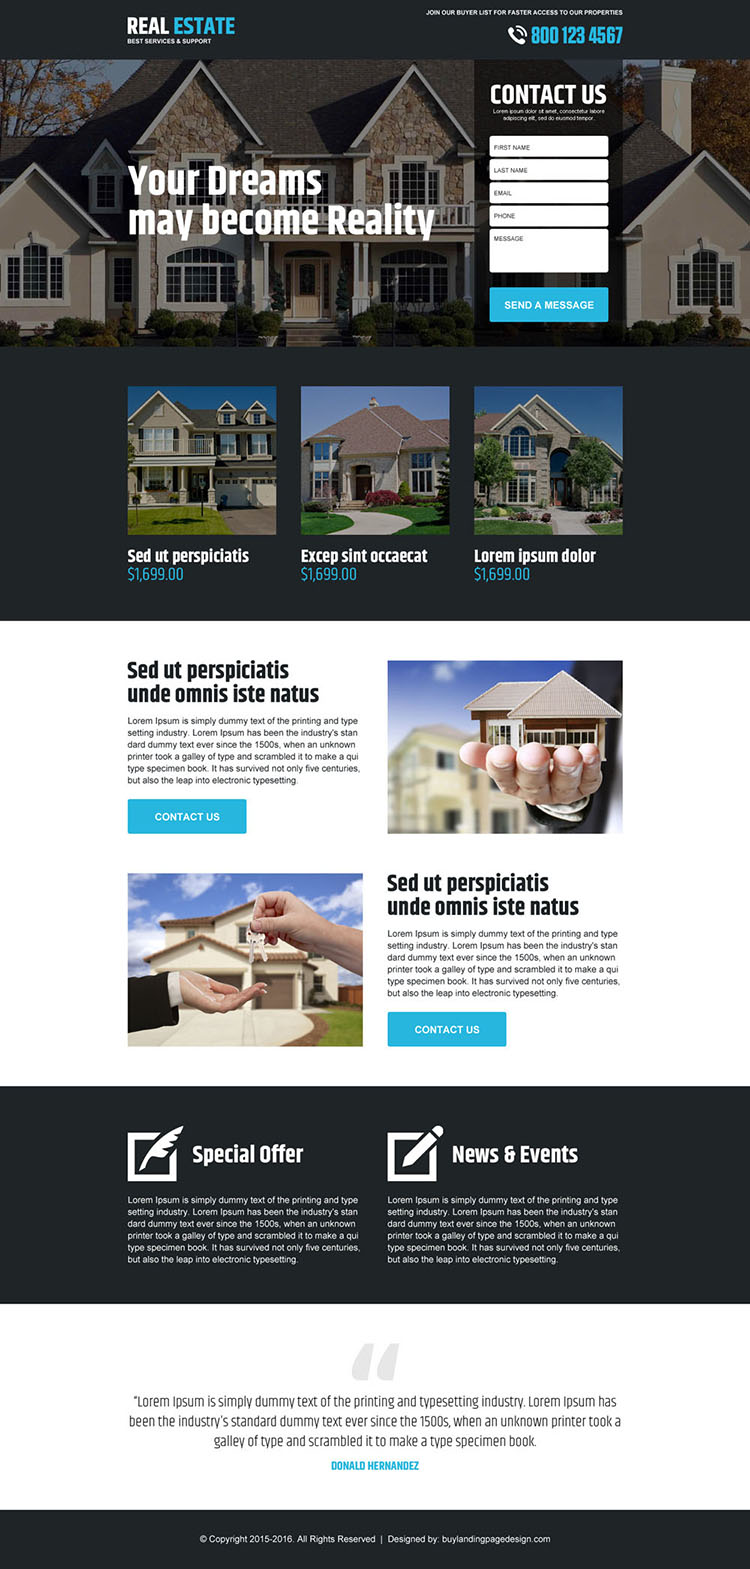 best real estate service support landing page design